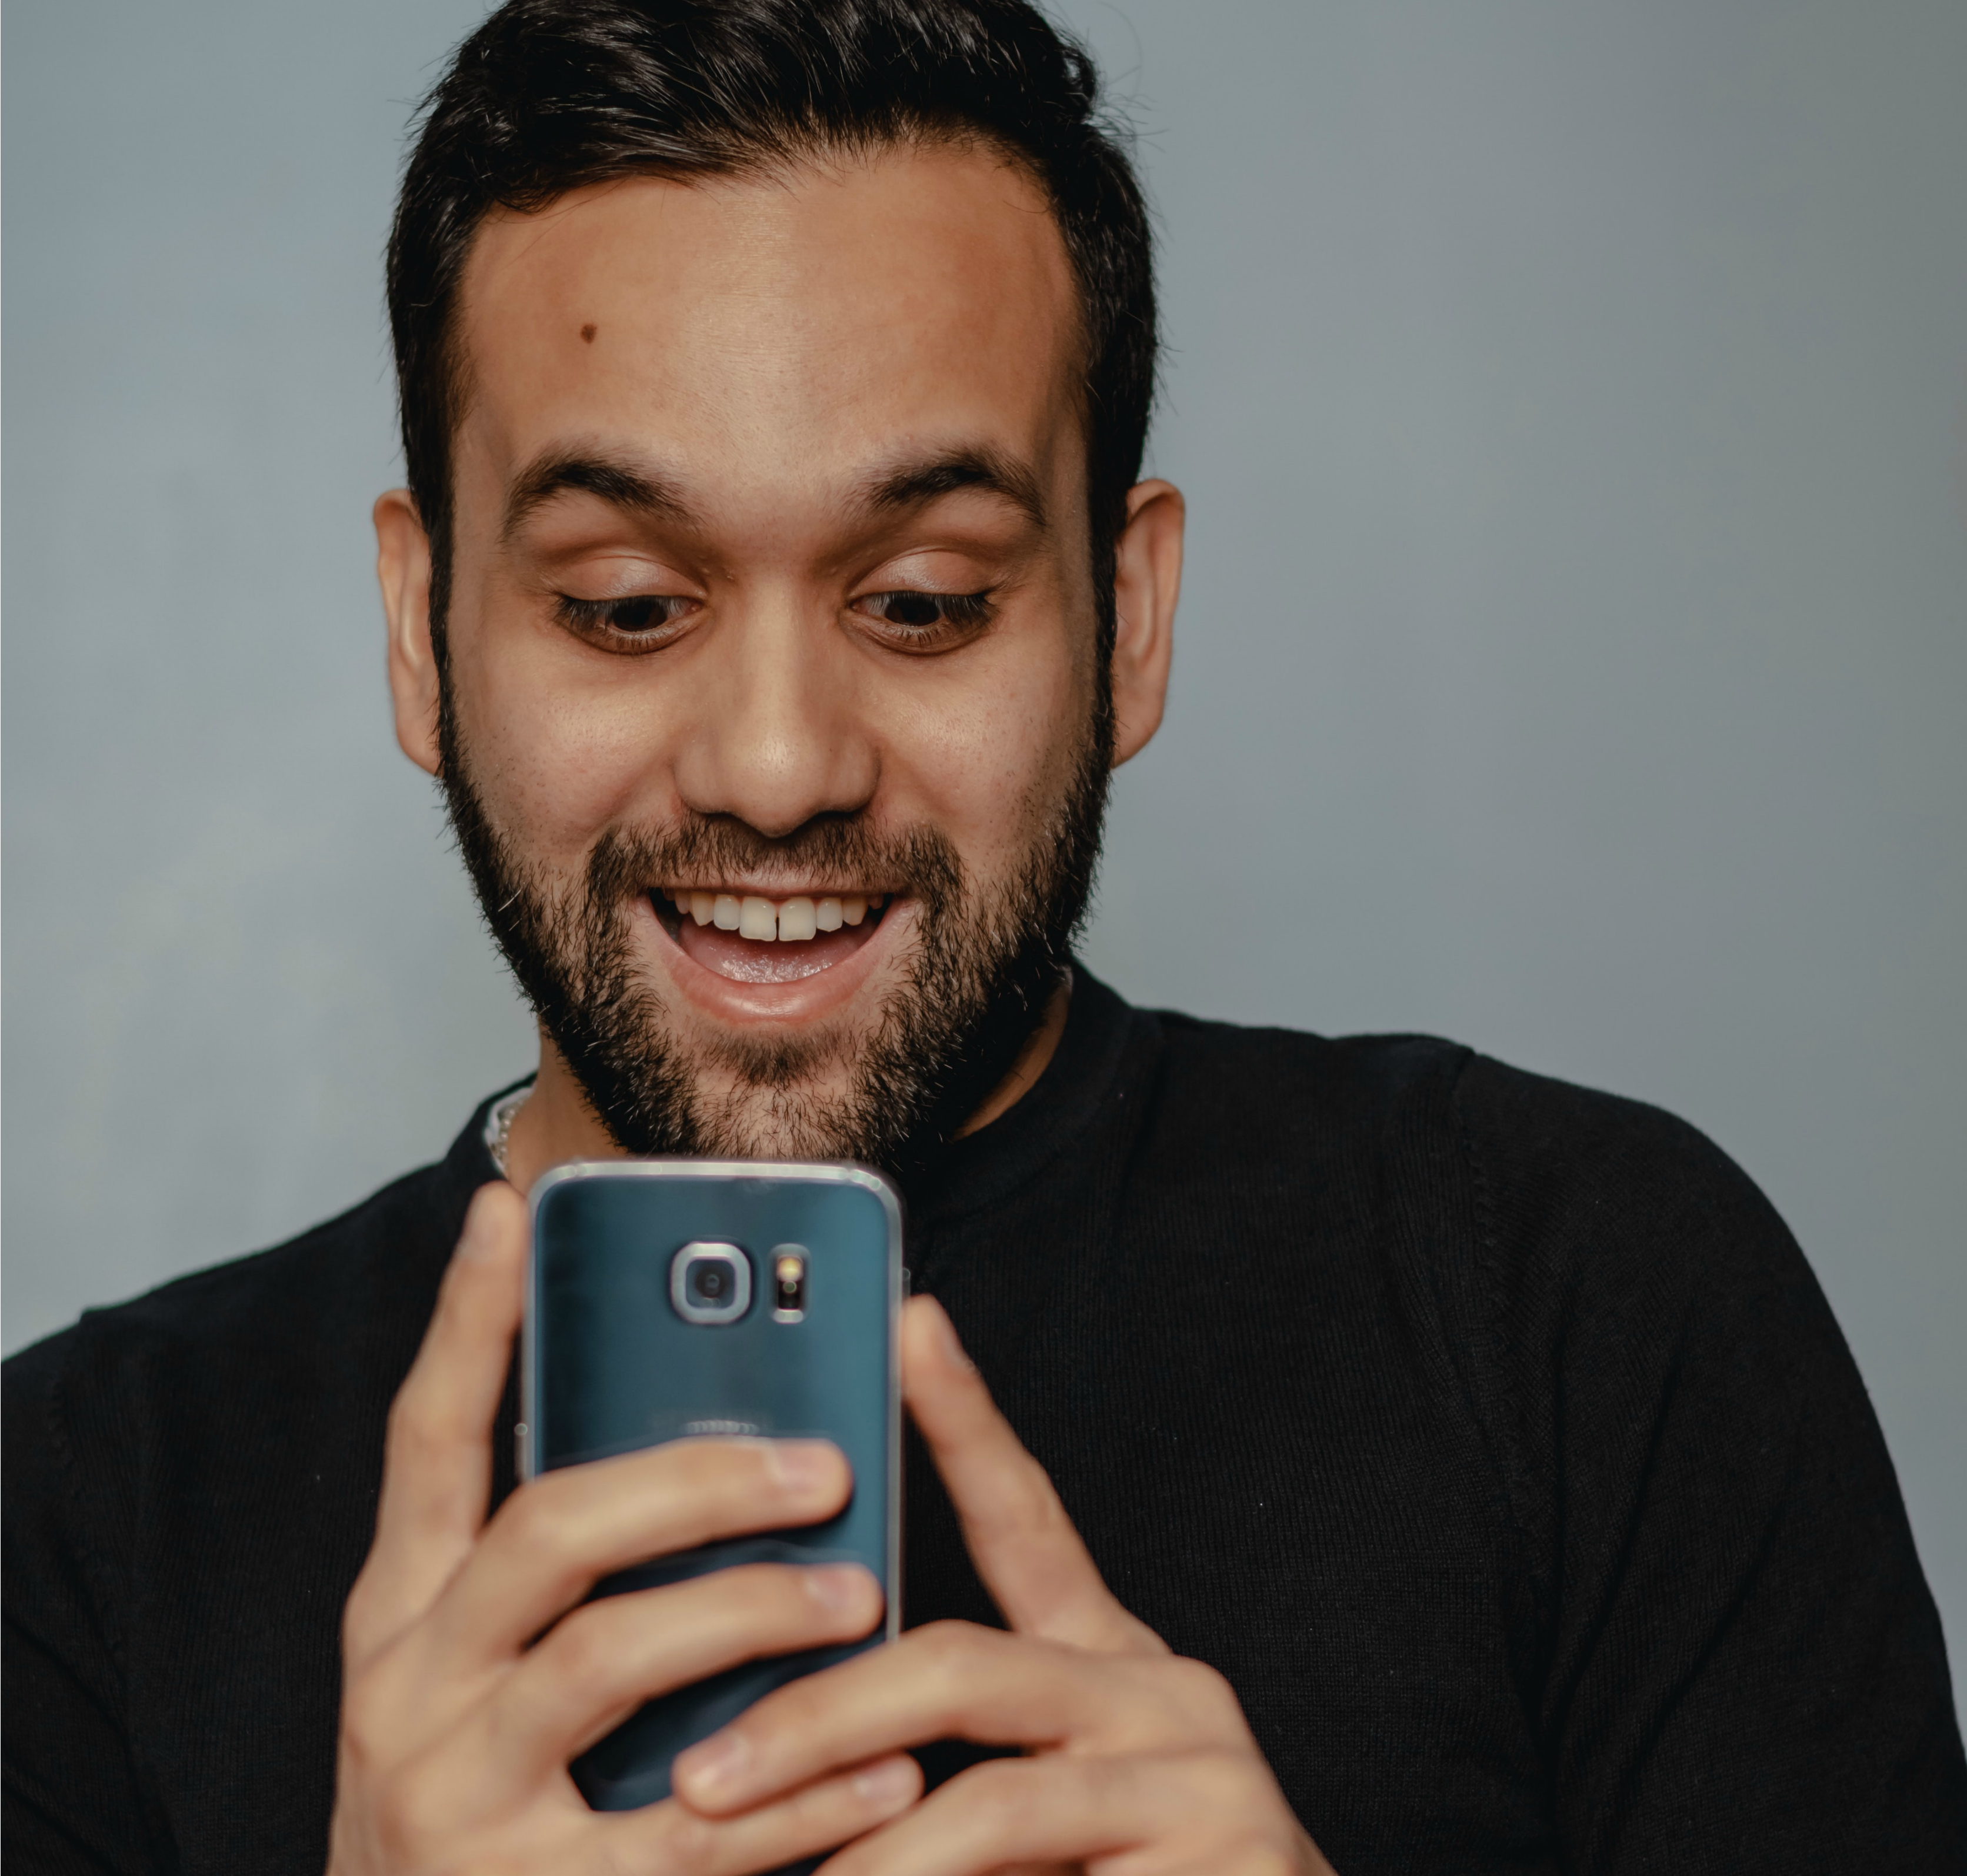 Man Looking at His Phone and is Thrilled